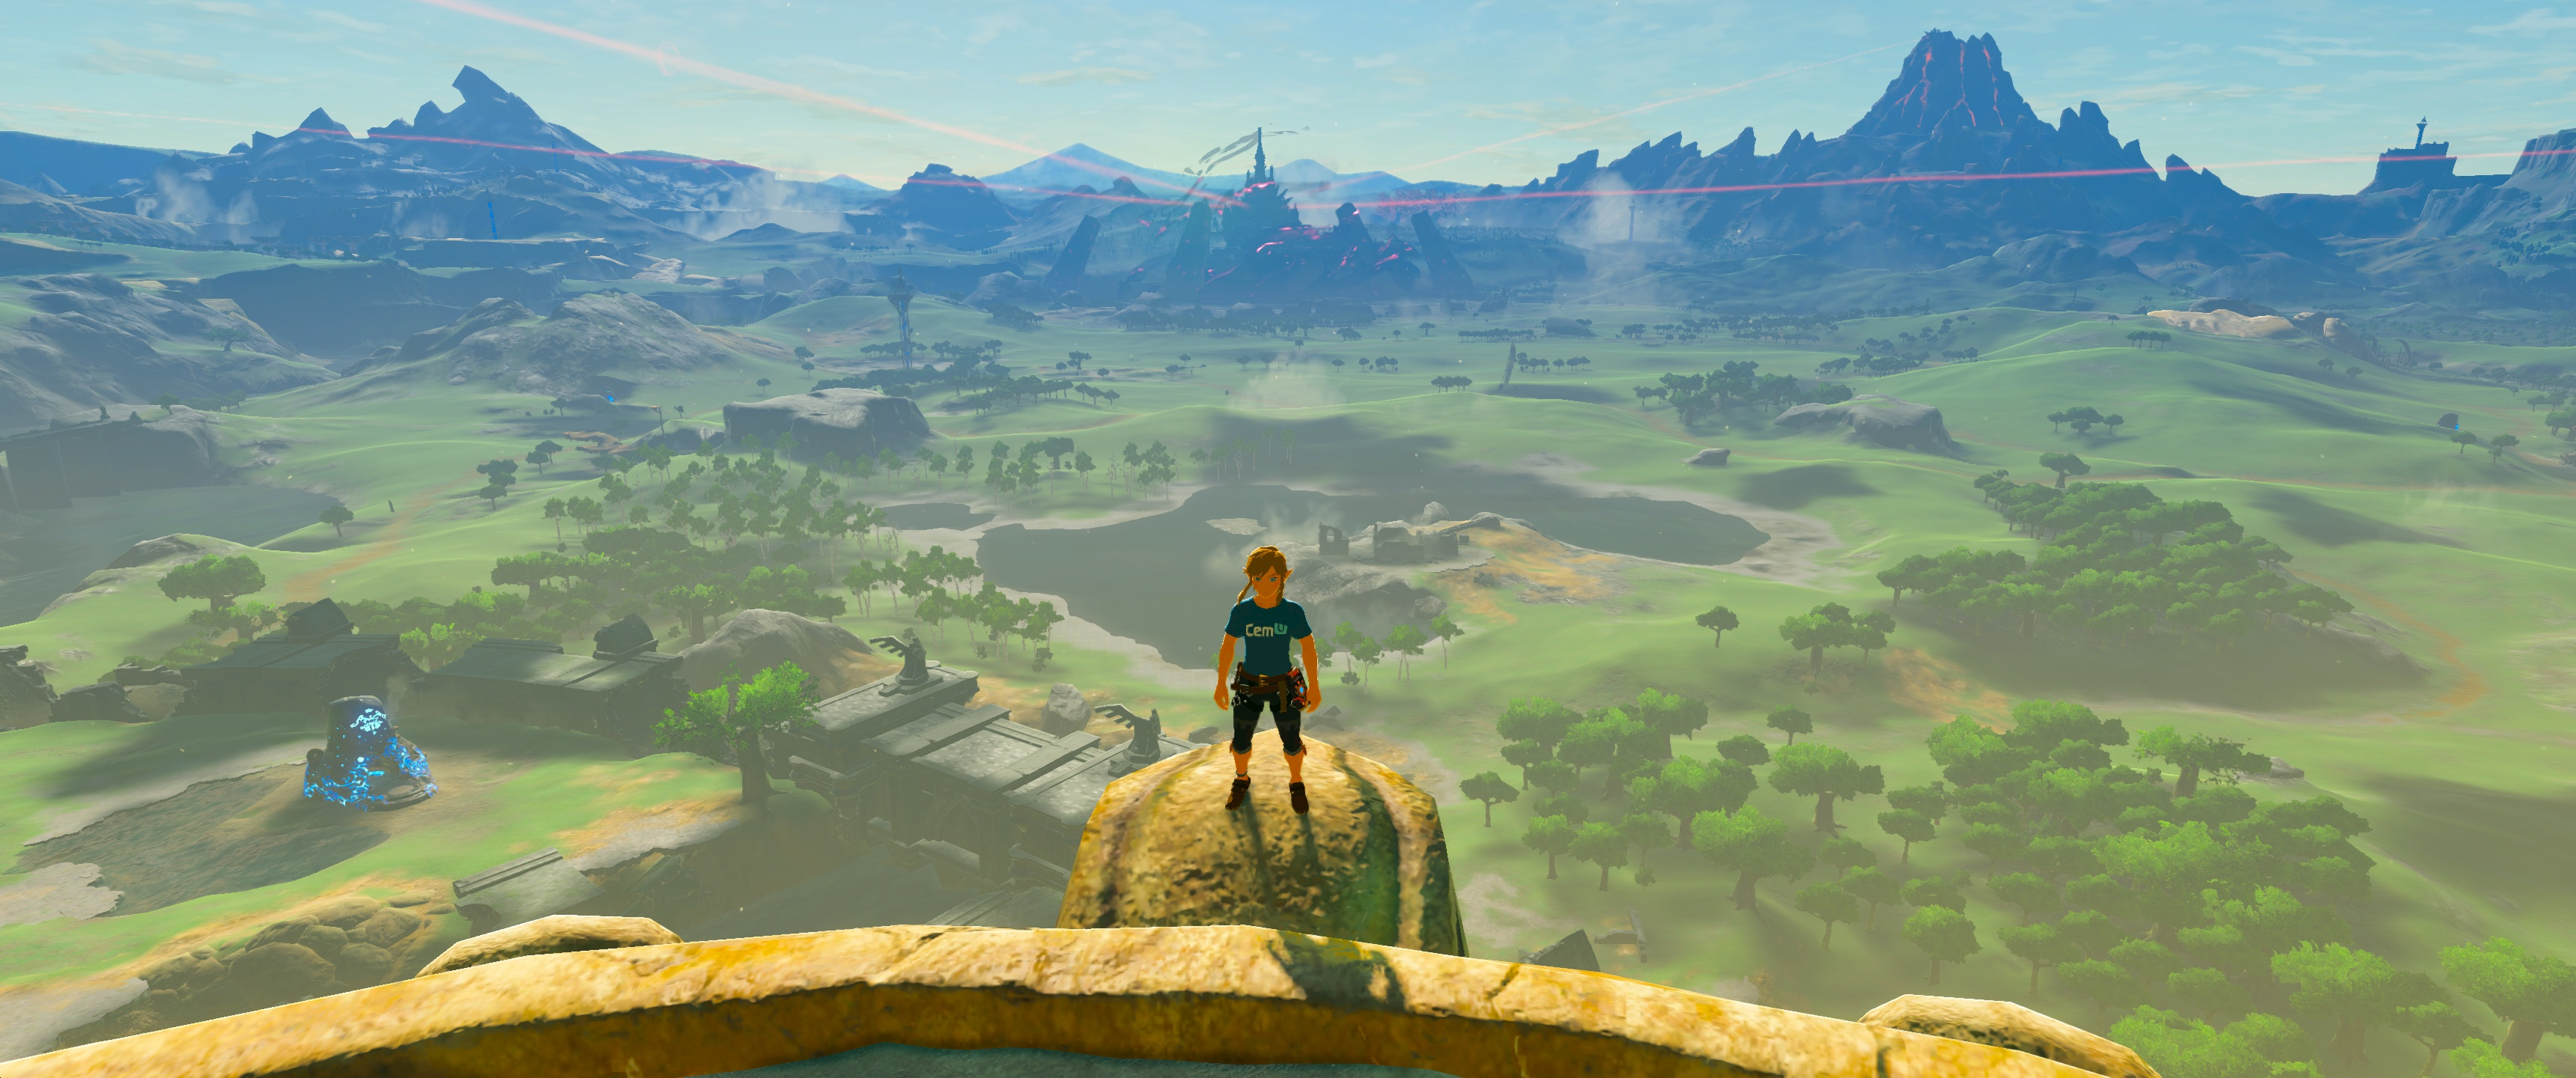 TLOZ: Breath of the Wild - 'Clarity GFX' Graphic Pack now